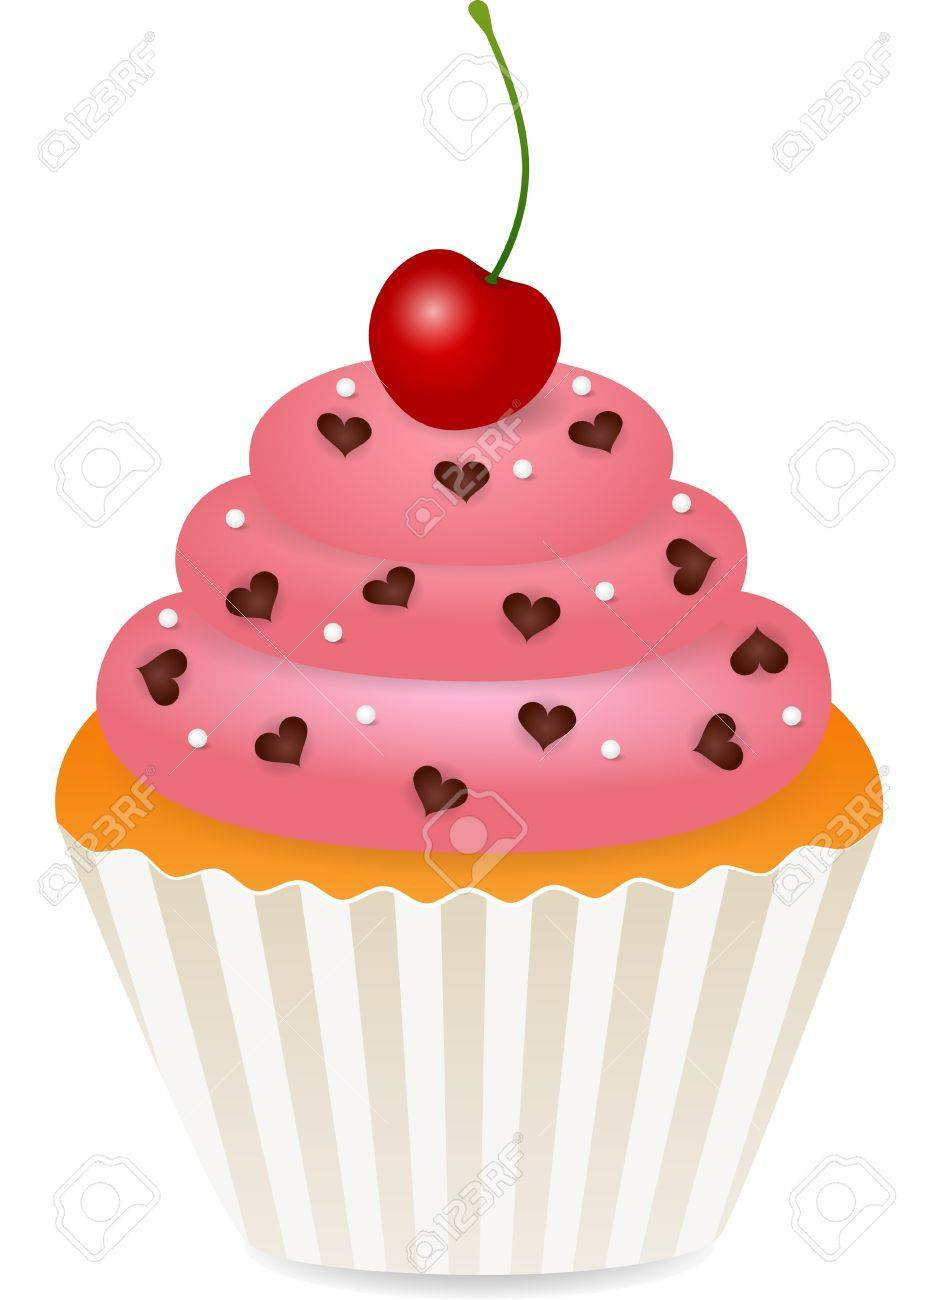 Cupcake with cherry on top clipart 4 » Clipart Portal.